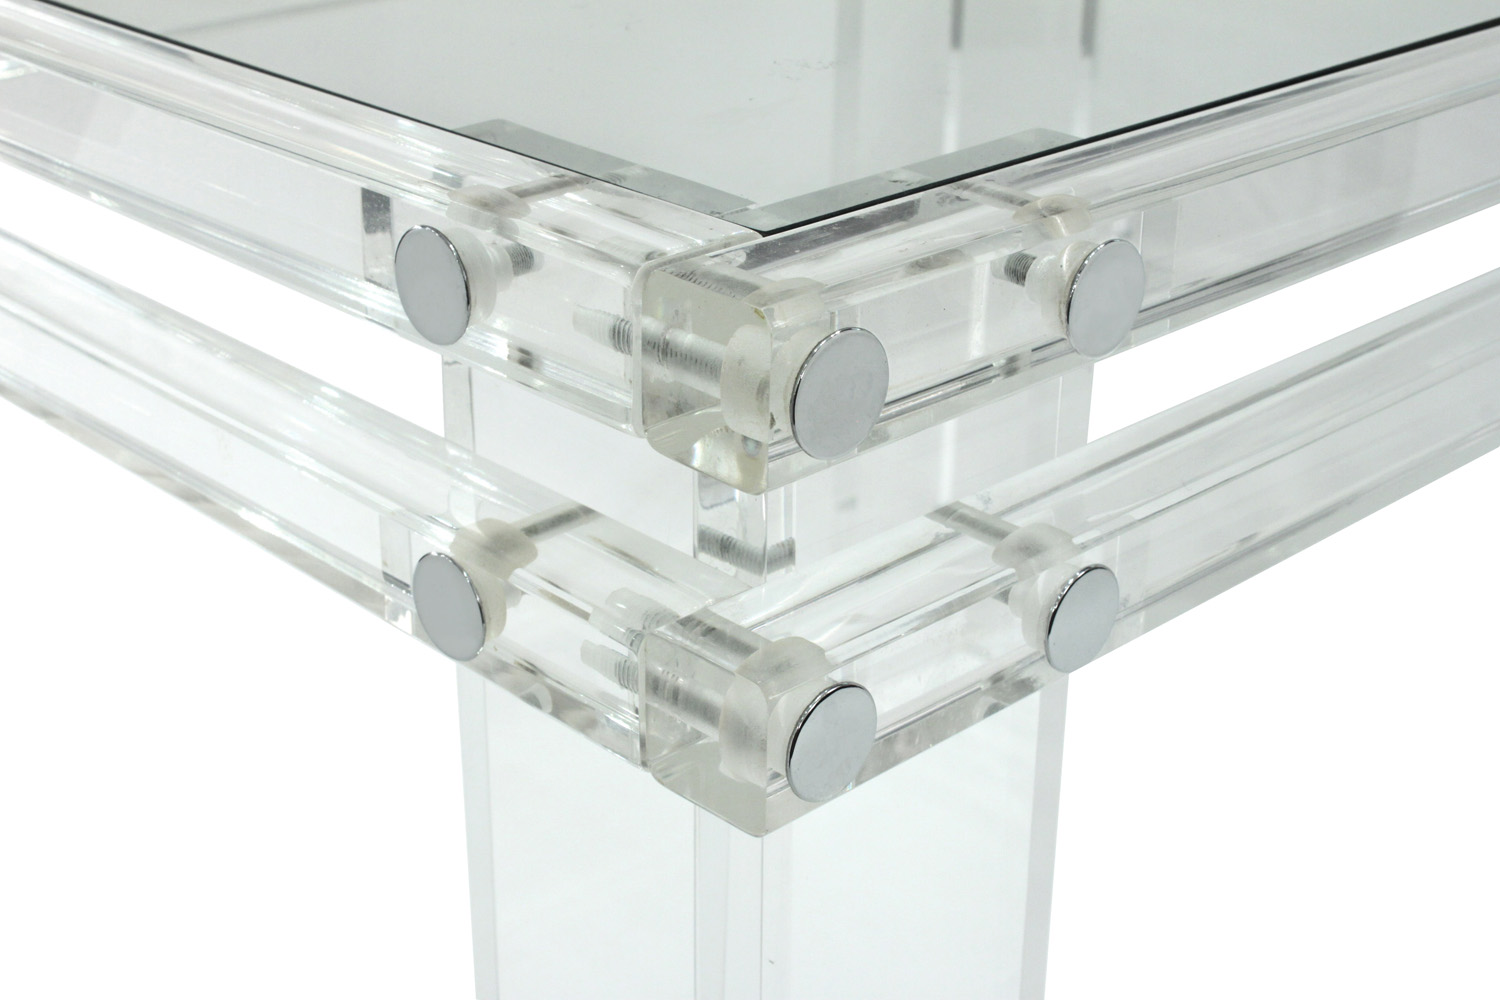 70s 35 square thick lucite+glass endtable143 detail1 hires.jpg